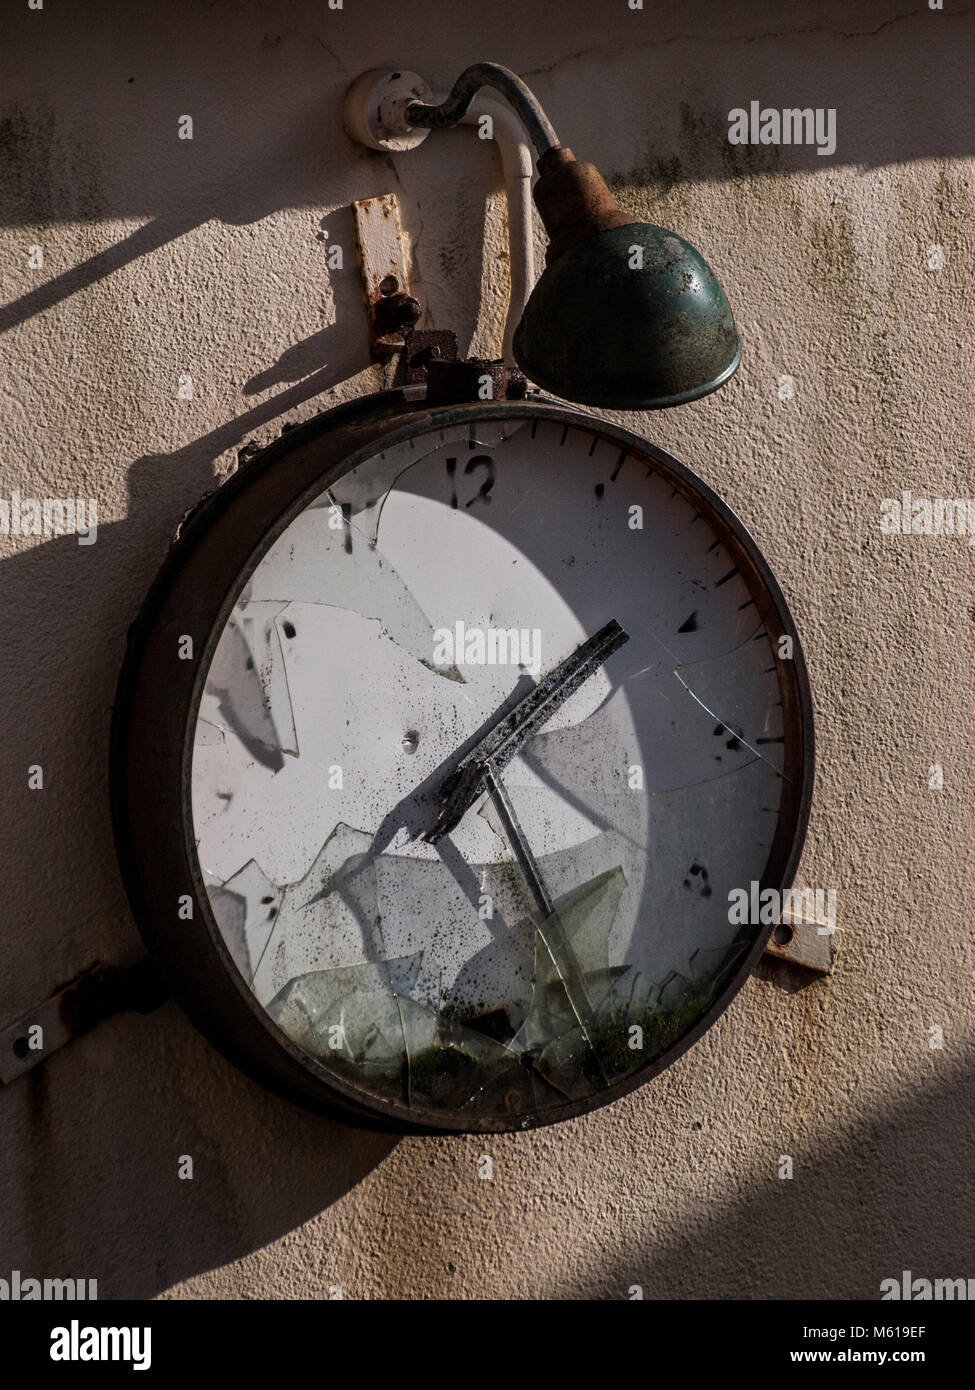 Old factory clock - Stock Image